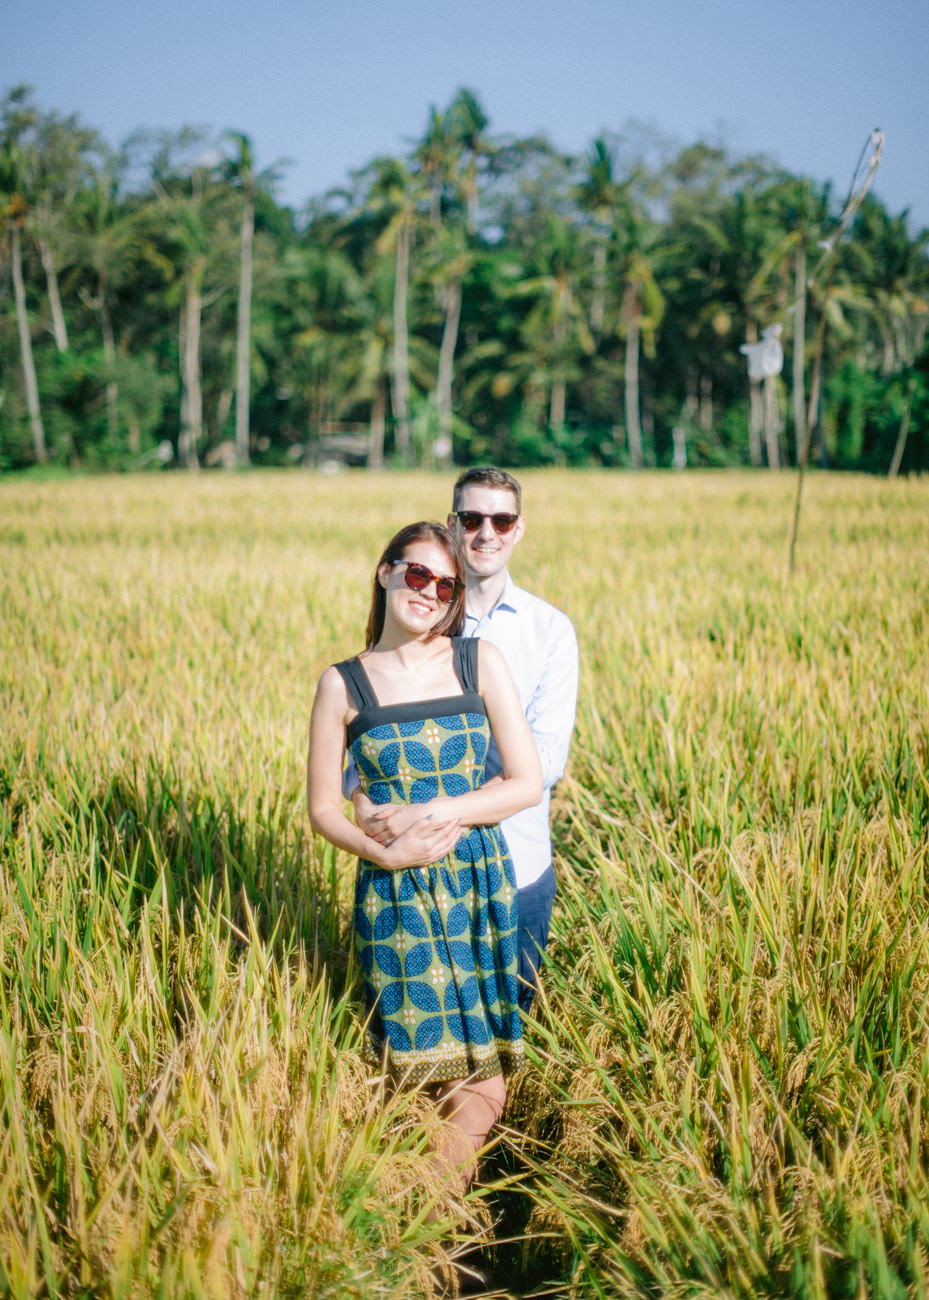 Engagement photos in rice field